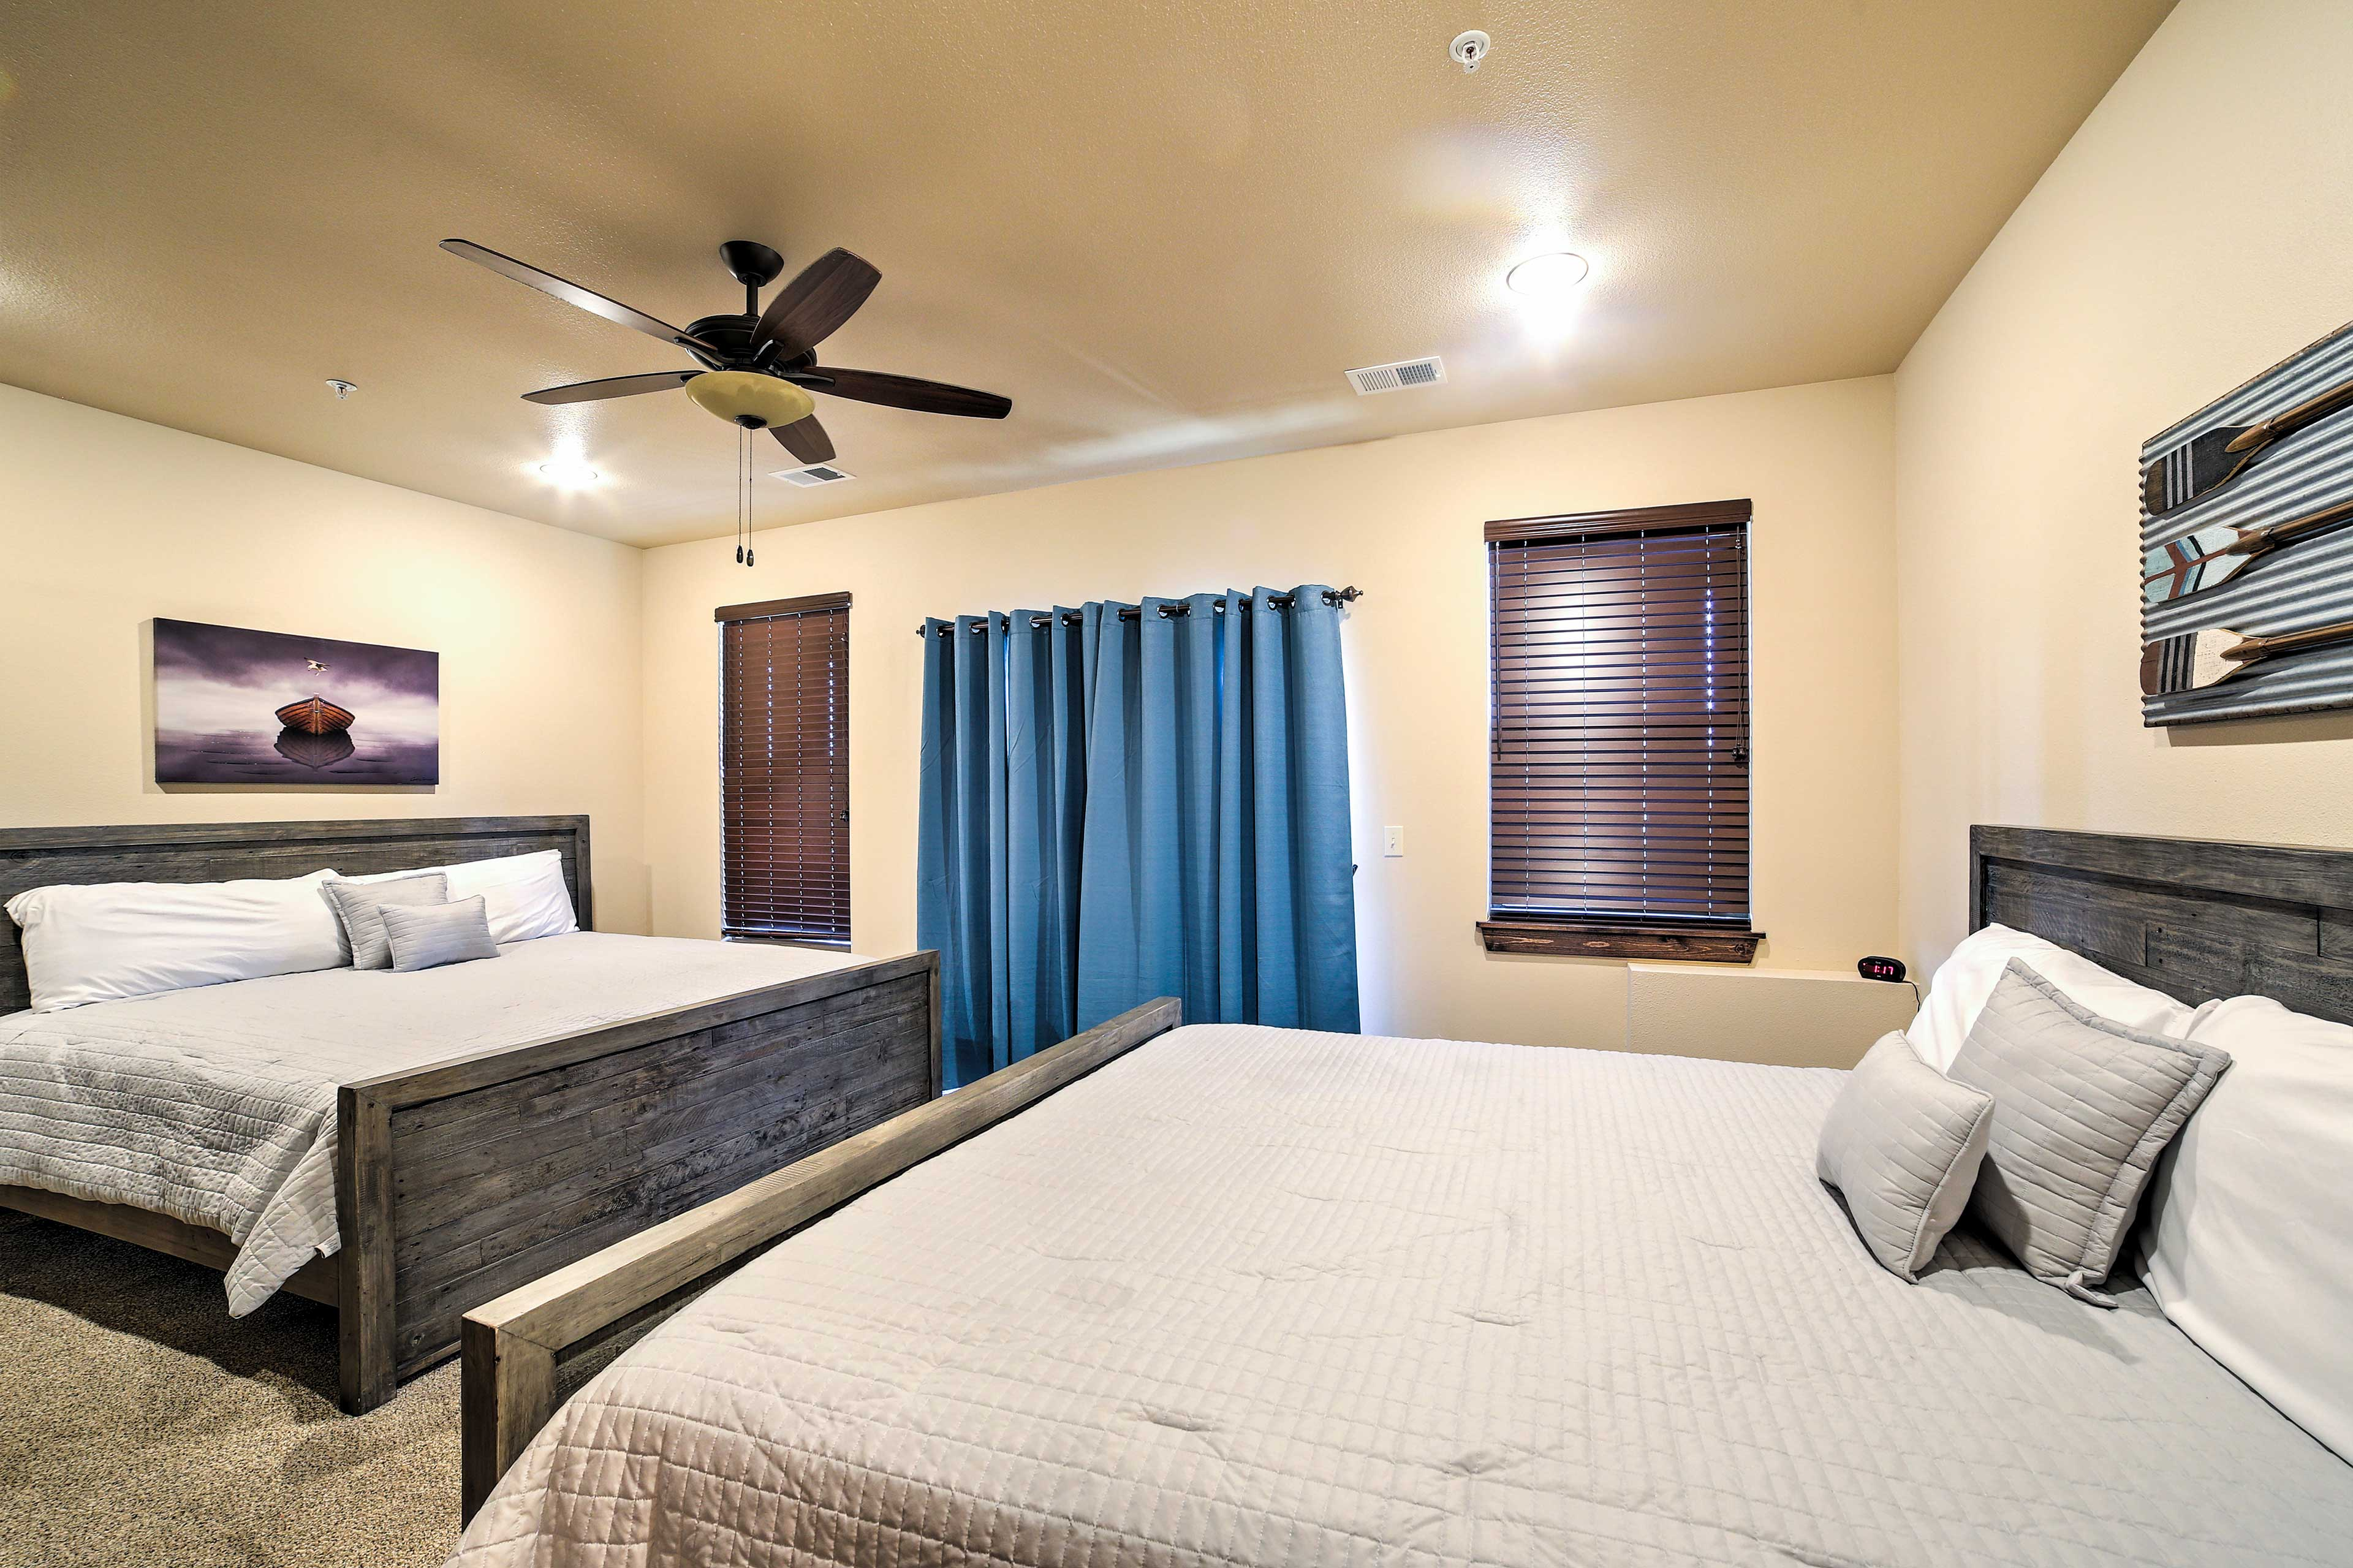 This room accommodates 4 guests.